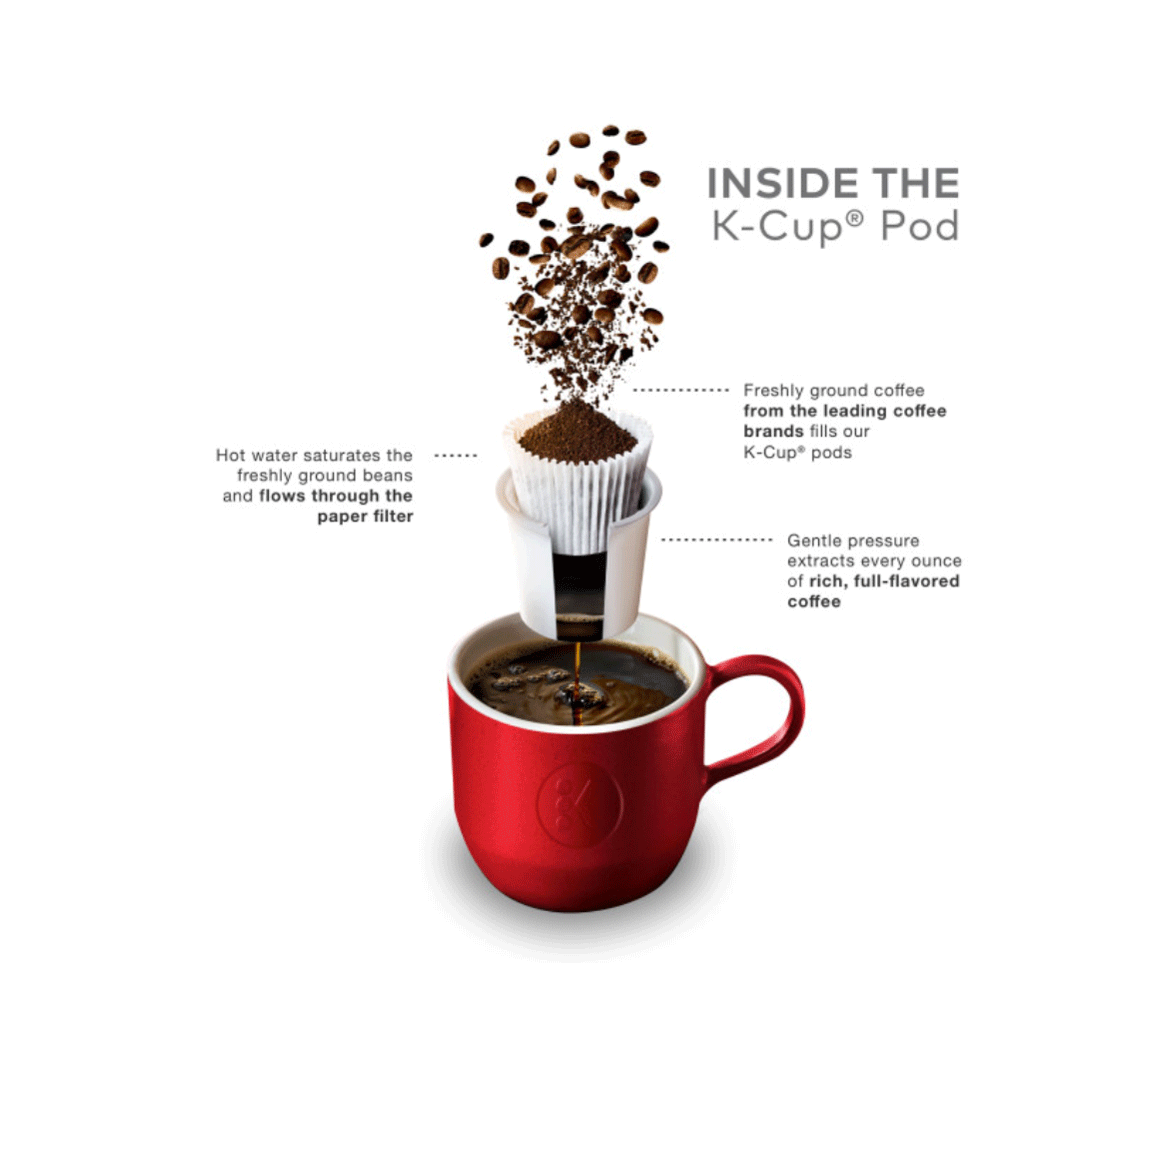 internal diagram of k cup coffee pod Image3